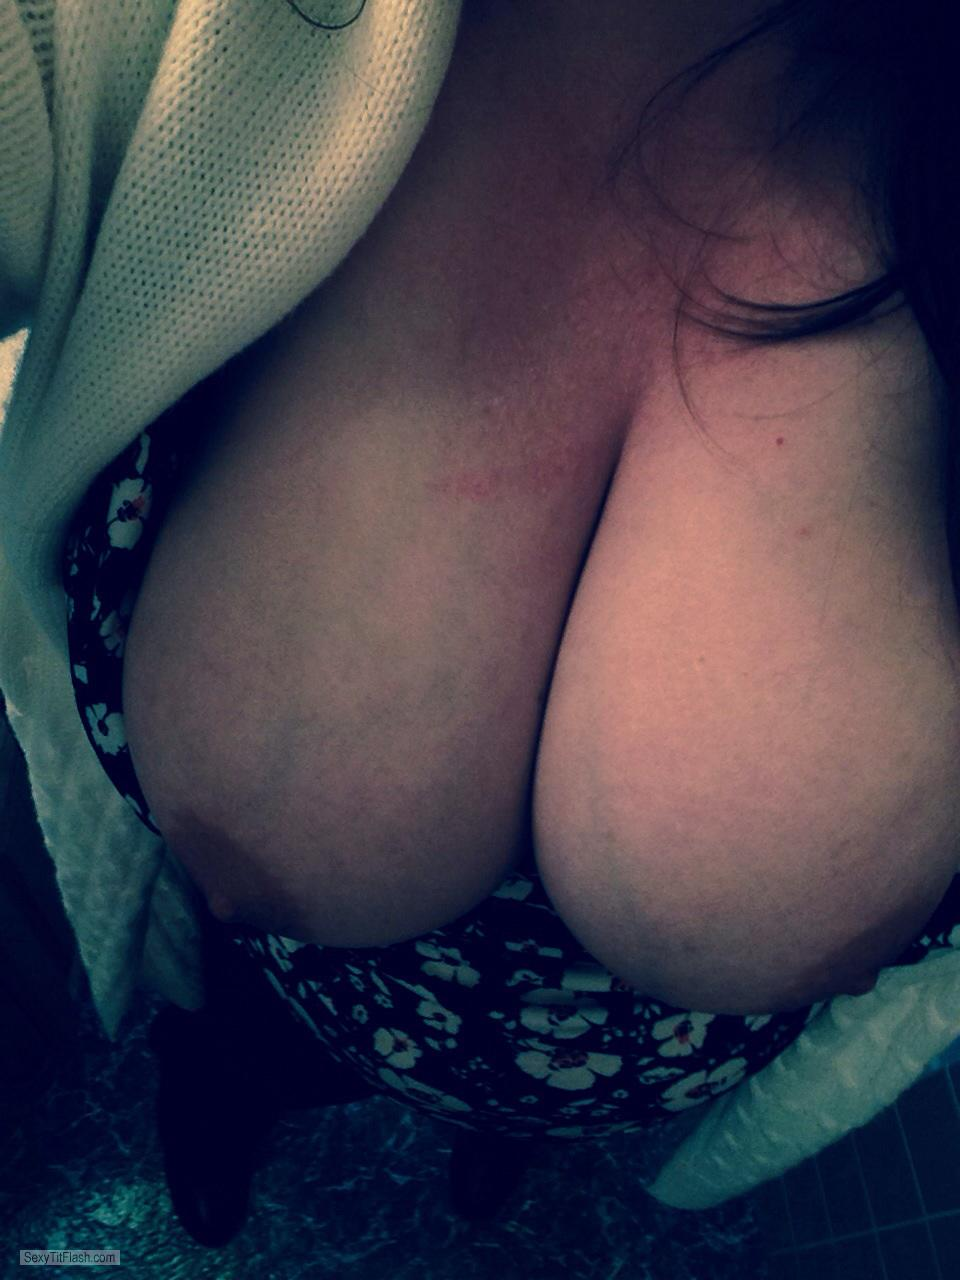 Tit Flash: My Extremely Big Tits (Selfie) - Rayann from United States